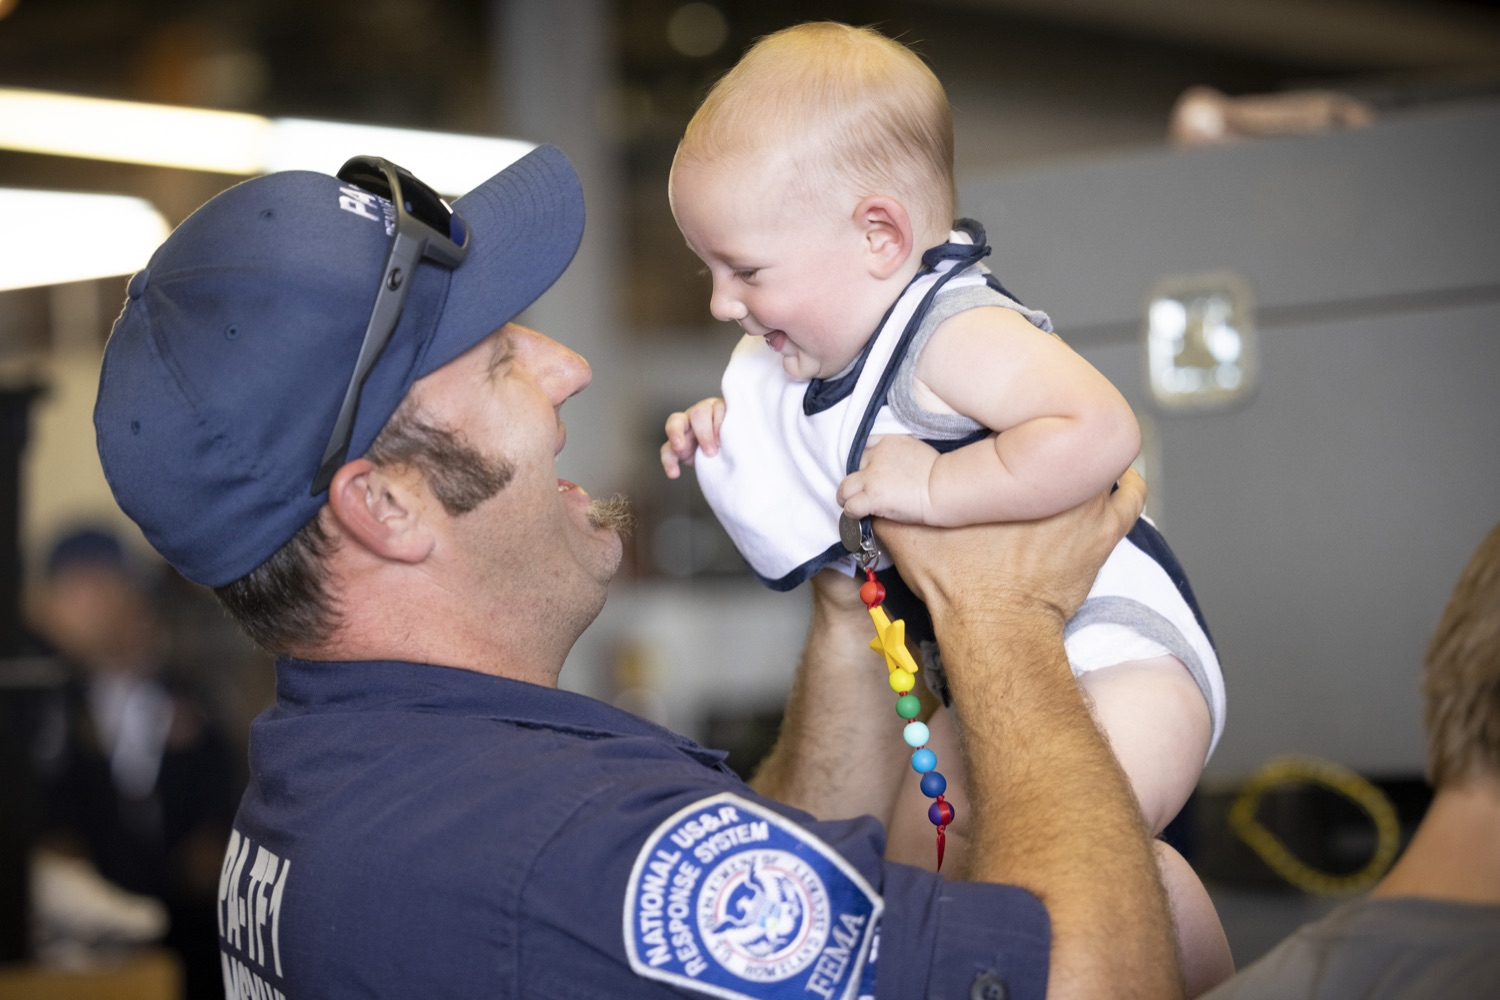 """<a href=""""https://filesource.wostreaming.net/commonwealthofpa/photo/18936_gov_taskforceone_dz_001.jpg"""" target=""""_blank"""">⇣Download Photo<br></a>Pennsylvania-Task Force 1 member James Obrien greeting his son Murphy.  Governor Tom Wolf thanked members of Pennsylvania-Task Force 1 (PA- TF1), who returned today to Philadelphia after spending two weeks assisting with search and rescue efforts at the site of the recent deadly building collapse in Surfside, Florida.  Philadelphia, Pa.  July 16, 2021"""